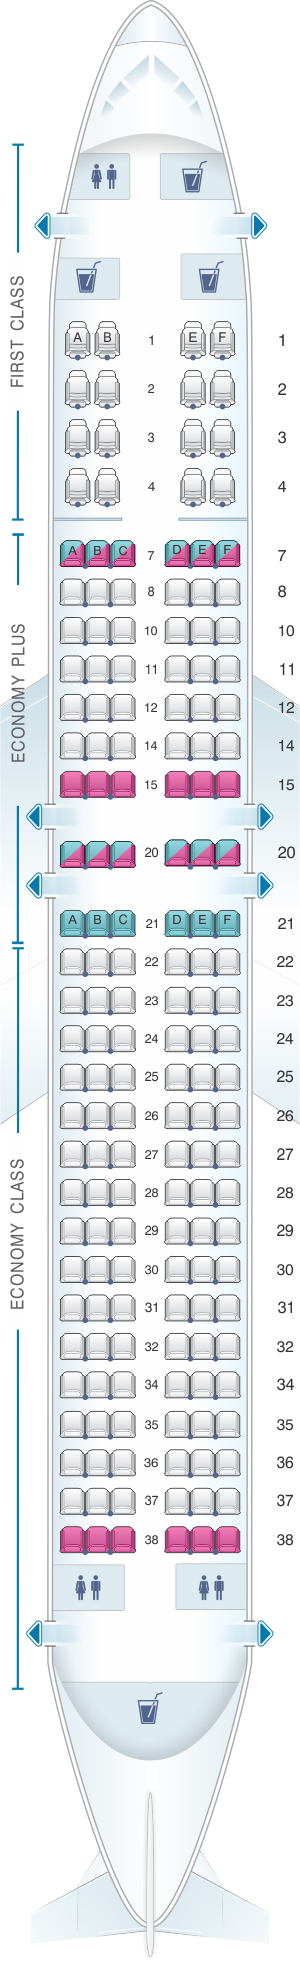 Seat map for United Airlines Boeing B737 800 - version 3